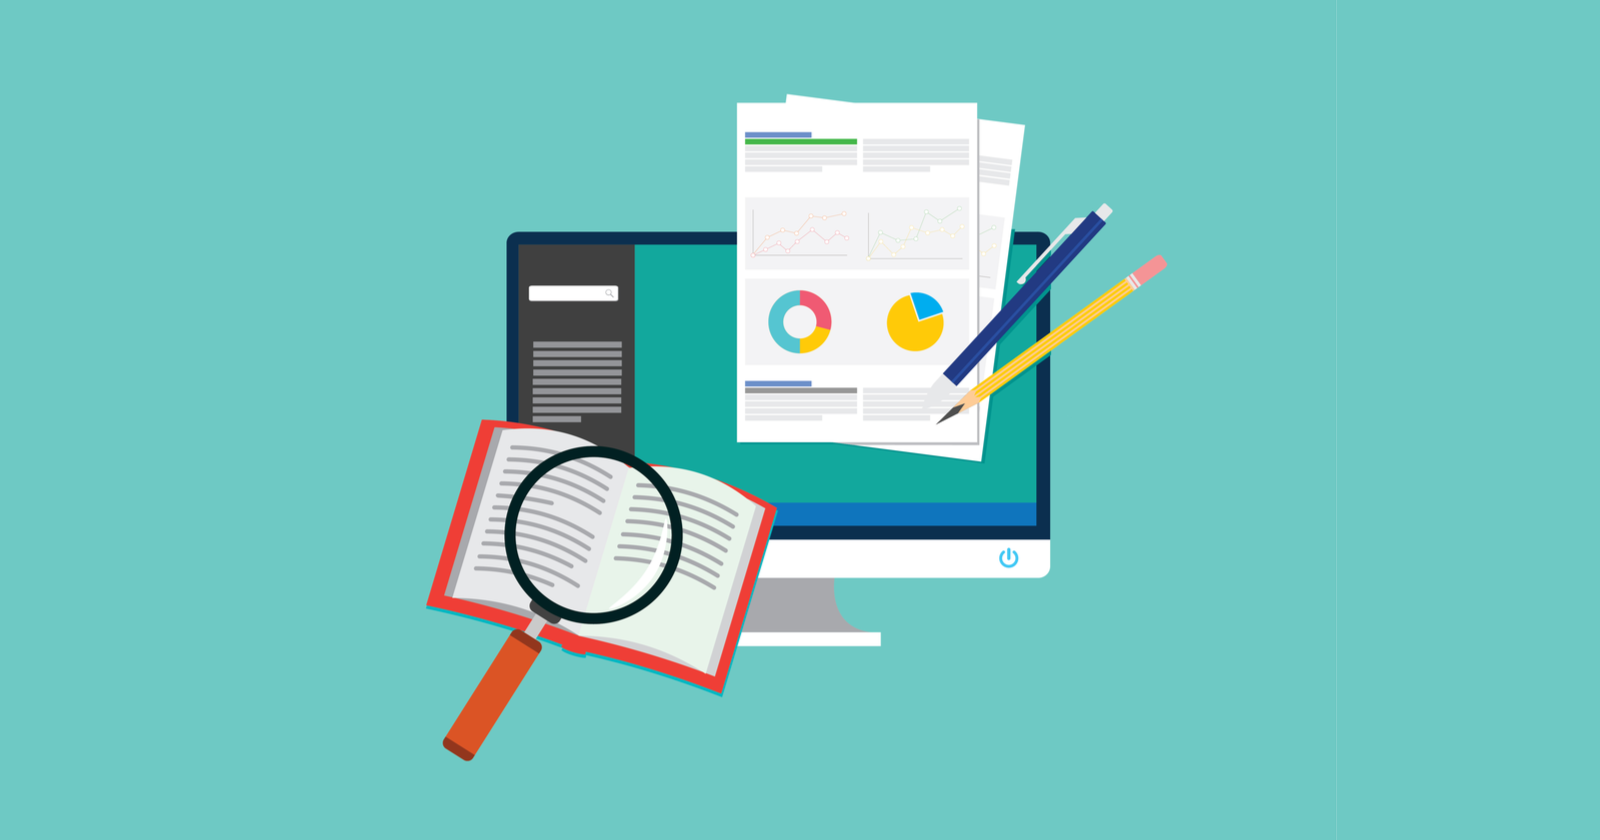 How to Write an Awesome Case Study That Converts